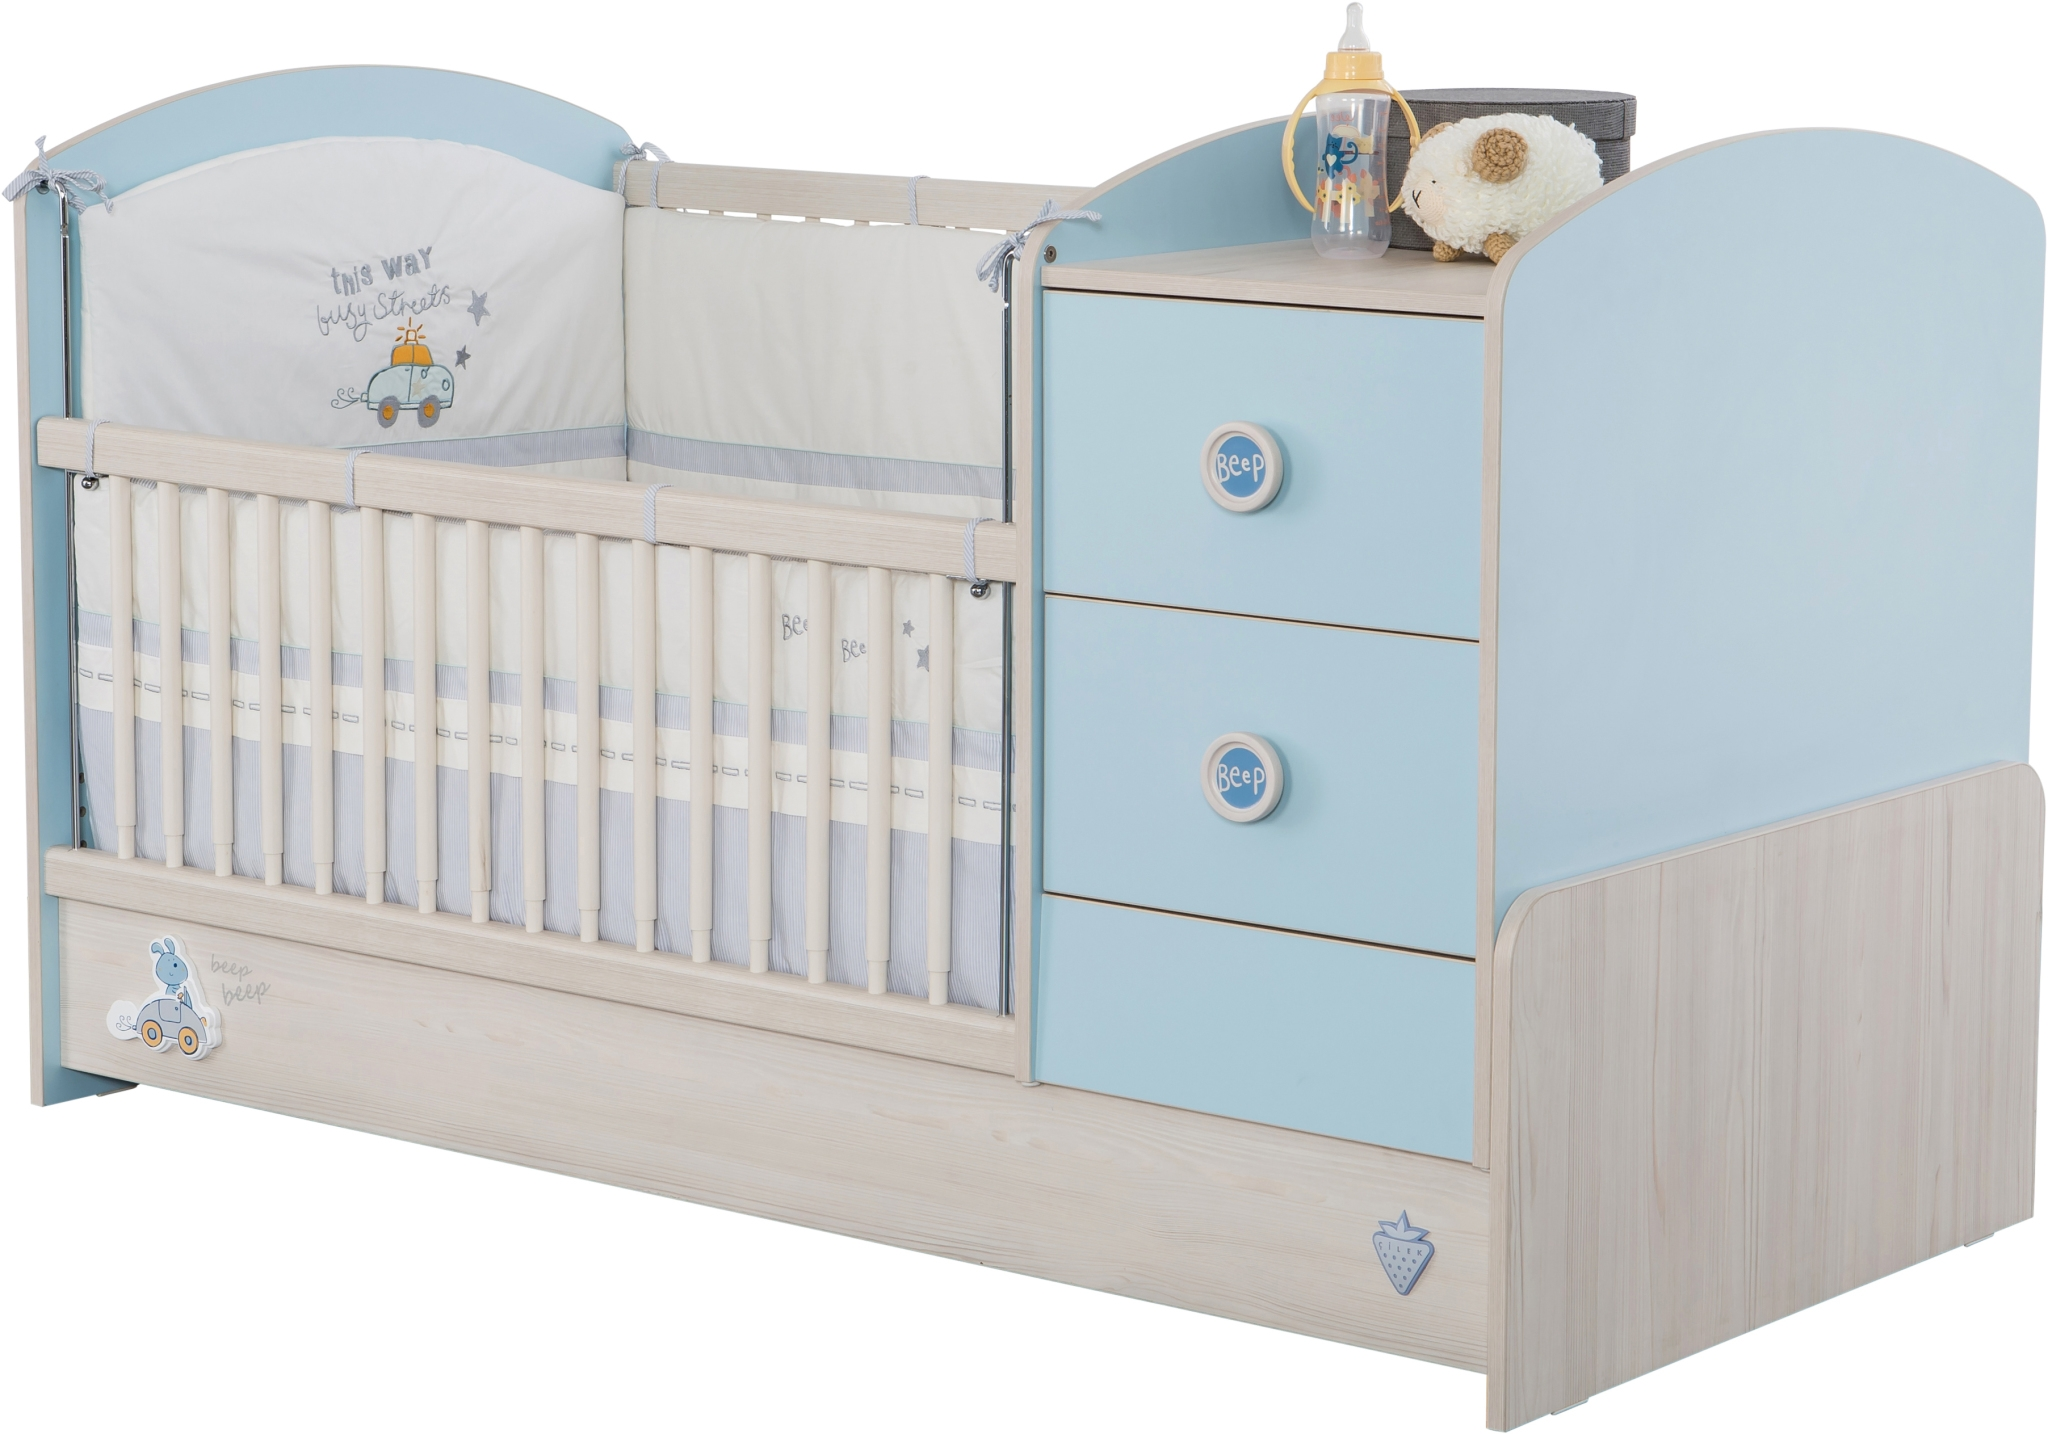 Patut transformabil din pal pentru bebe Baby Boy Light Blue / Nature 160 x 75 cm